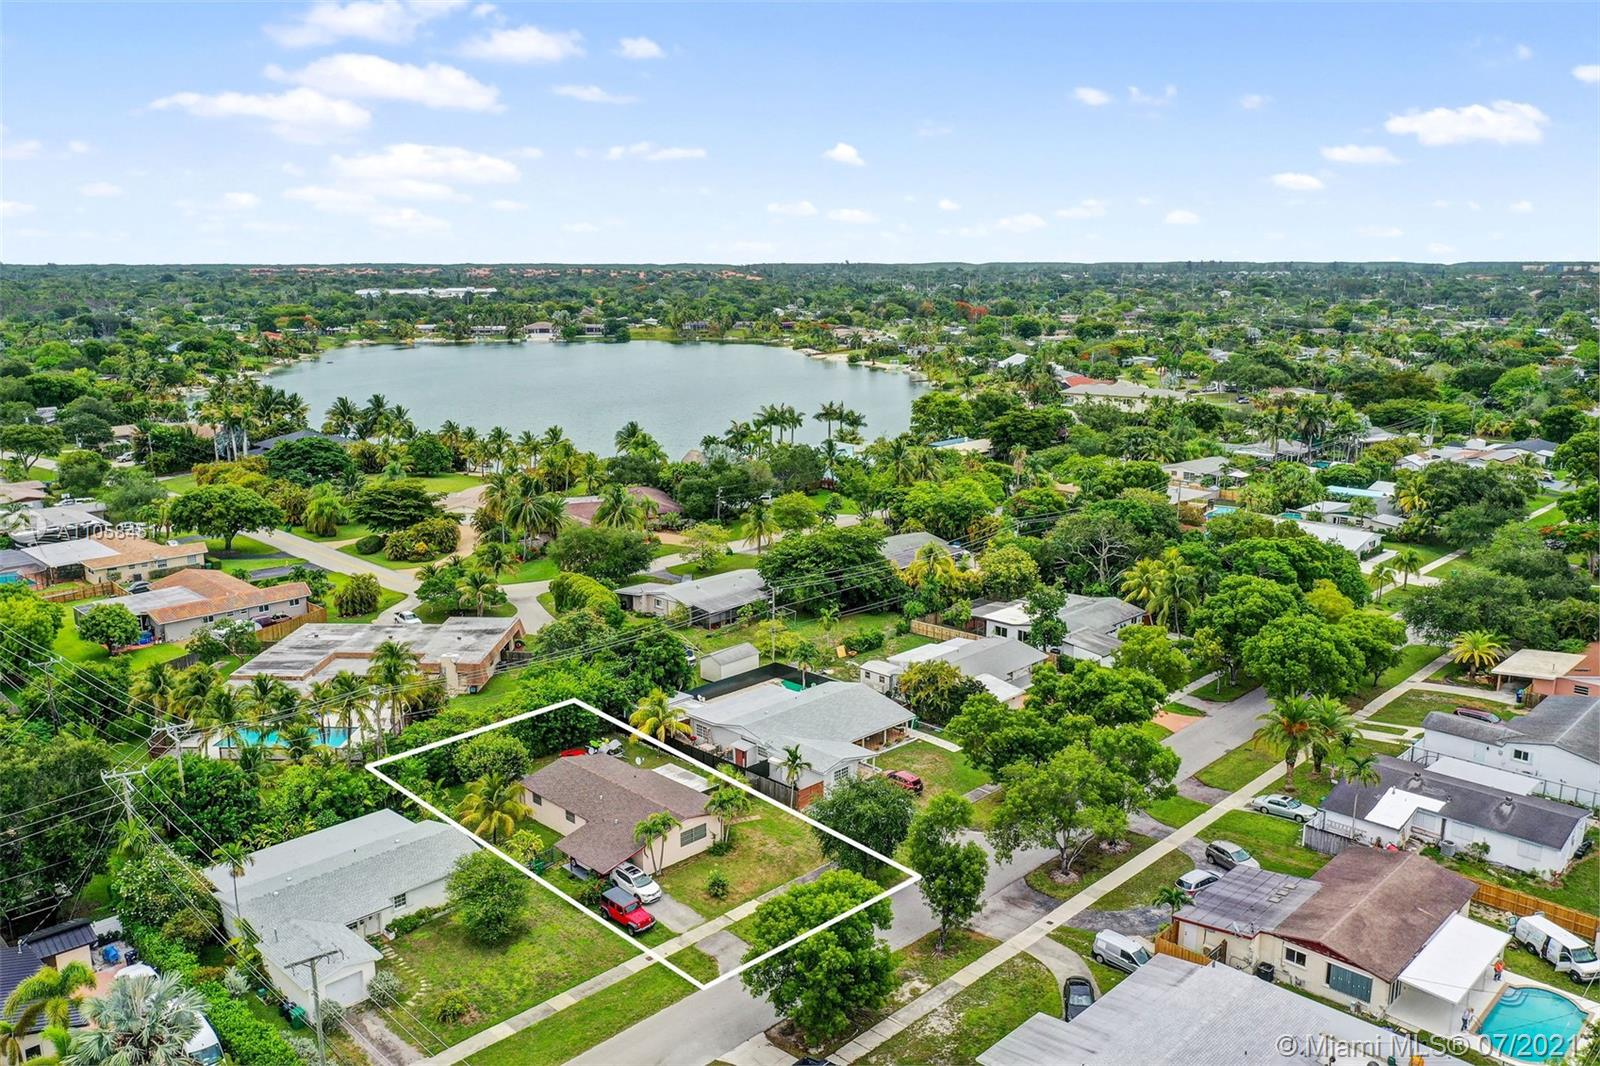 19441 SW Whispering Pines Rd, Cutler Bay, Florida 33157